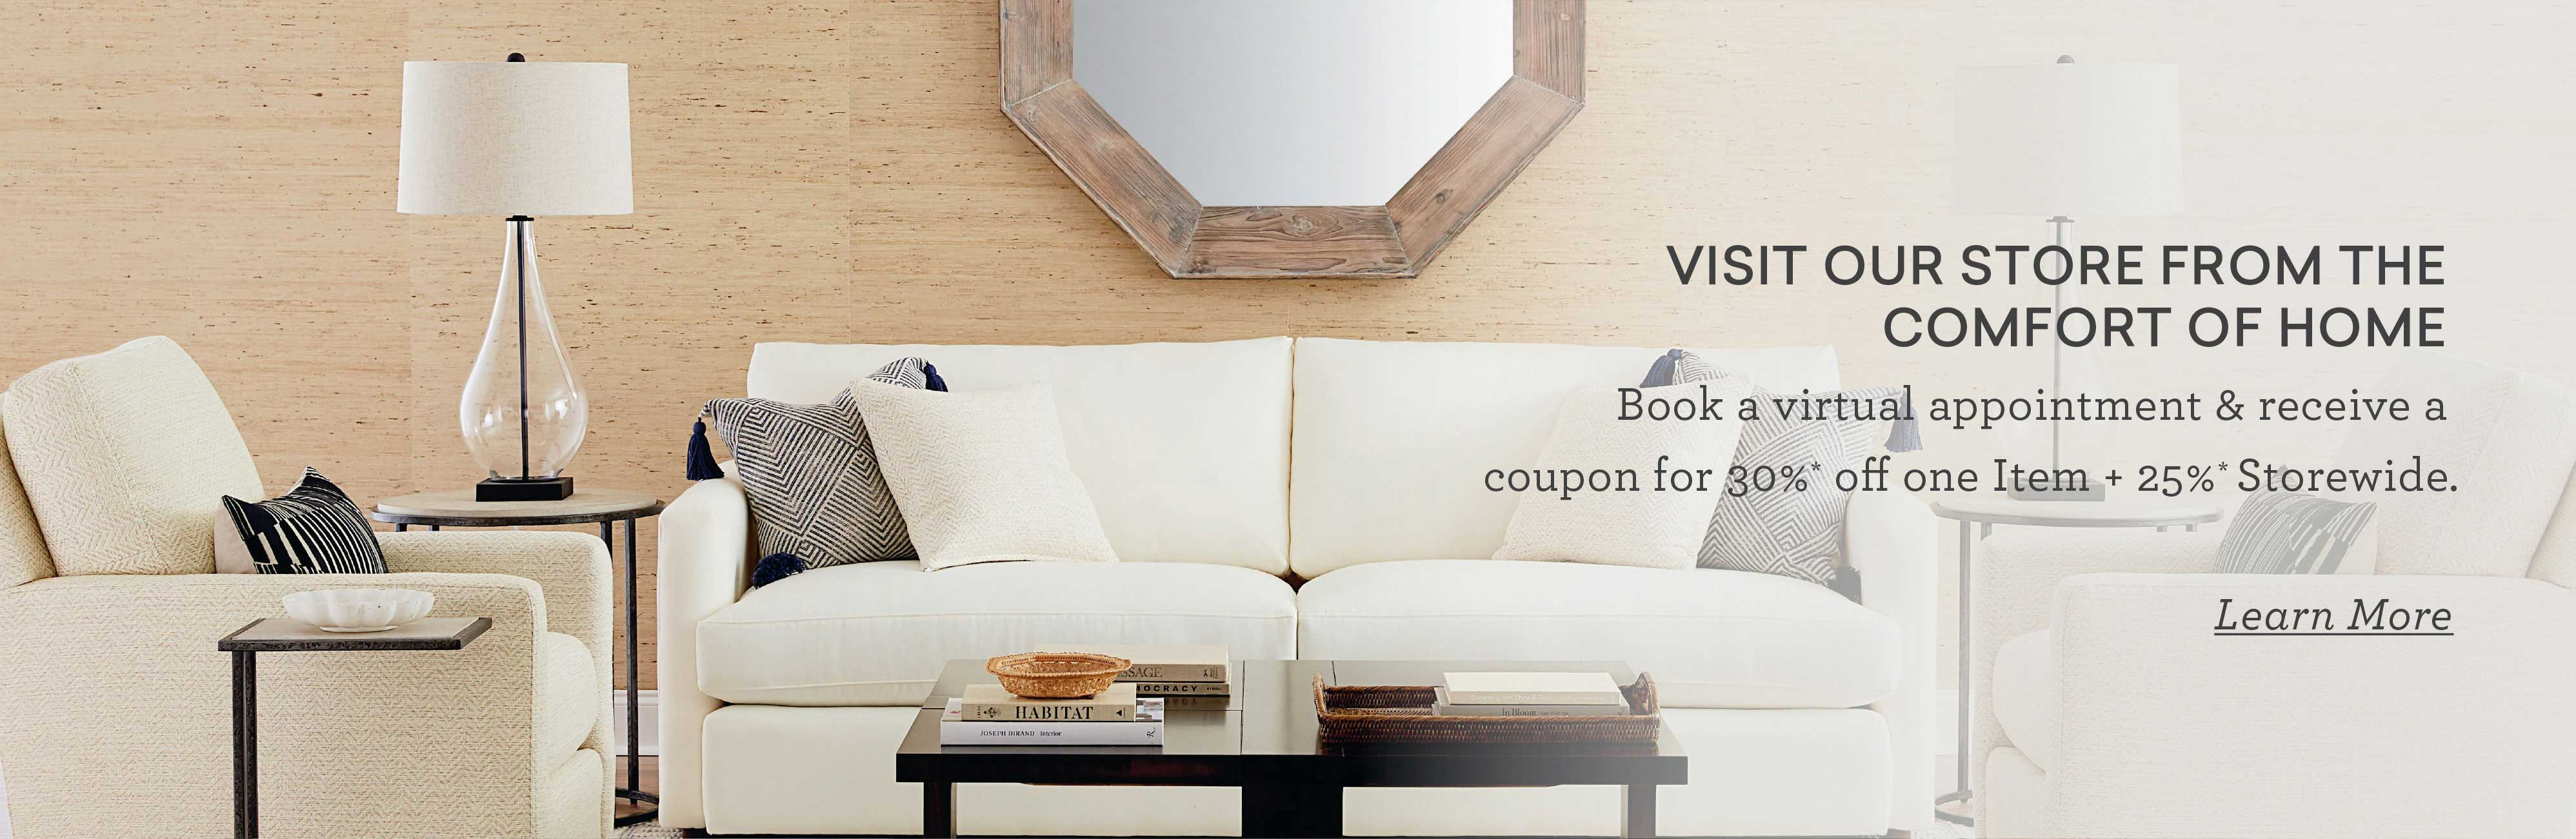 Book a virtual appointment and receive a coupon for 30% off one item and 25% off storewide Desktop